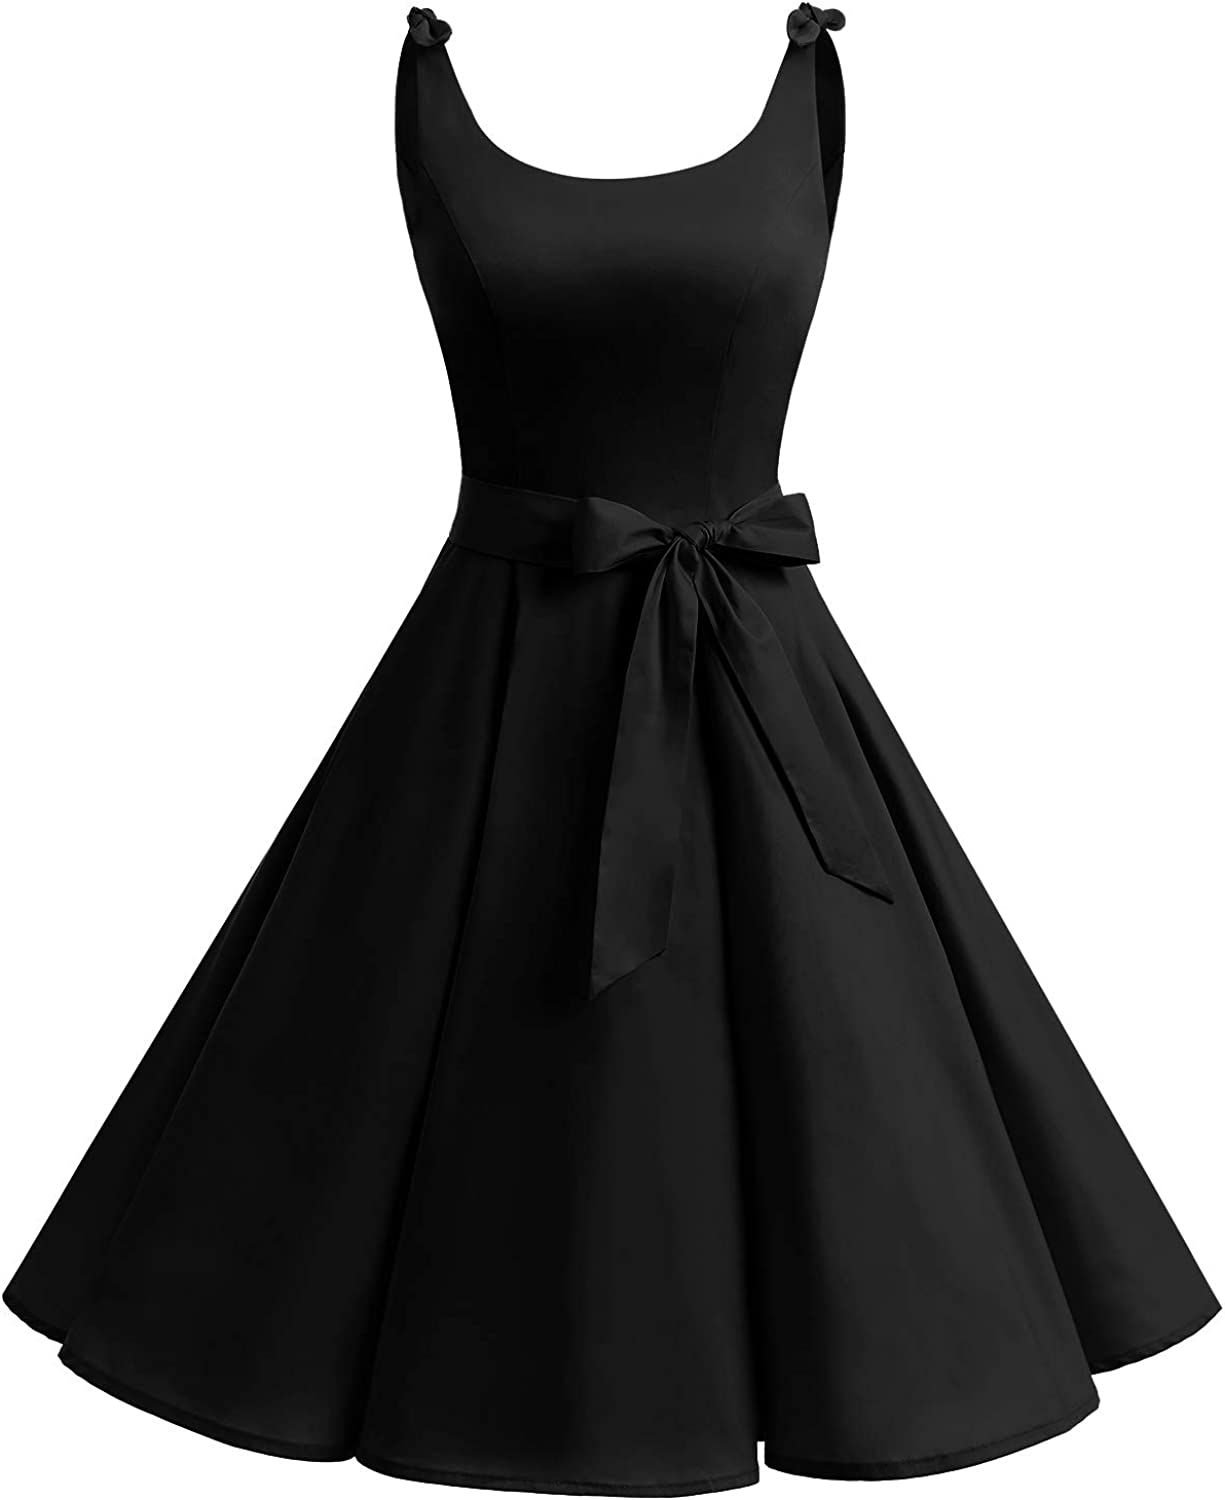 bbonlinedress Womens 1950s Vintage Retro Bowknot Floral Cocktail Swing Party Dress